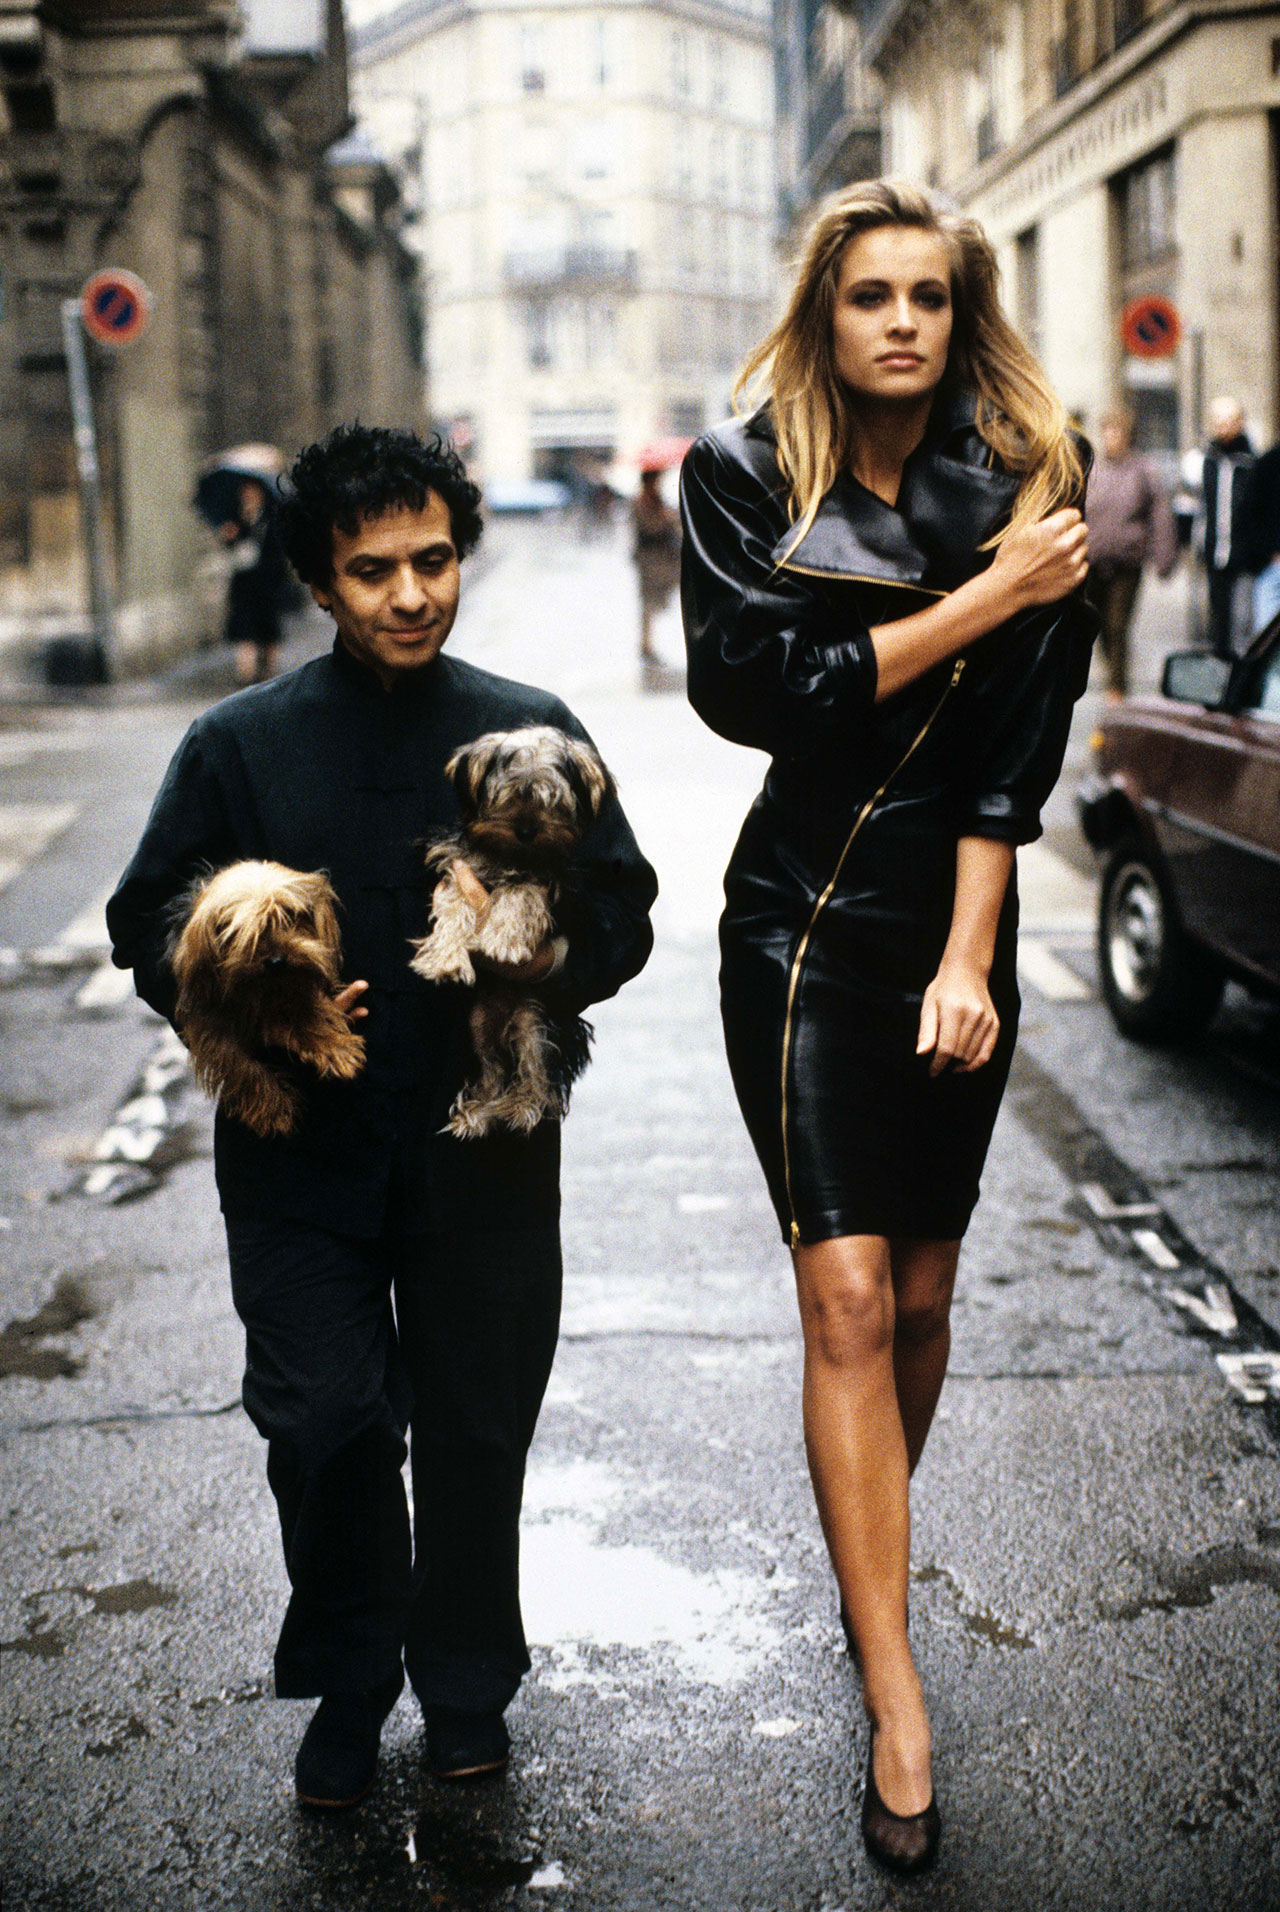 Fashion designer Azzedine Alaia holding his two Yorkshire terriers, Patapouf and Wabo, walking in Paris street with model Frederique who wears one of his creations, a black leather zippered dress, 1986. Photo by Arthur Elgort.